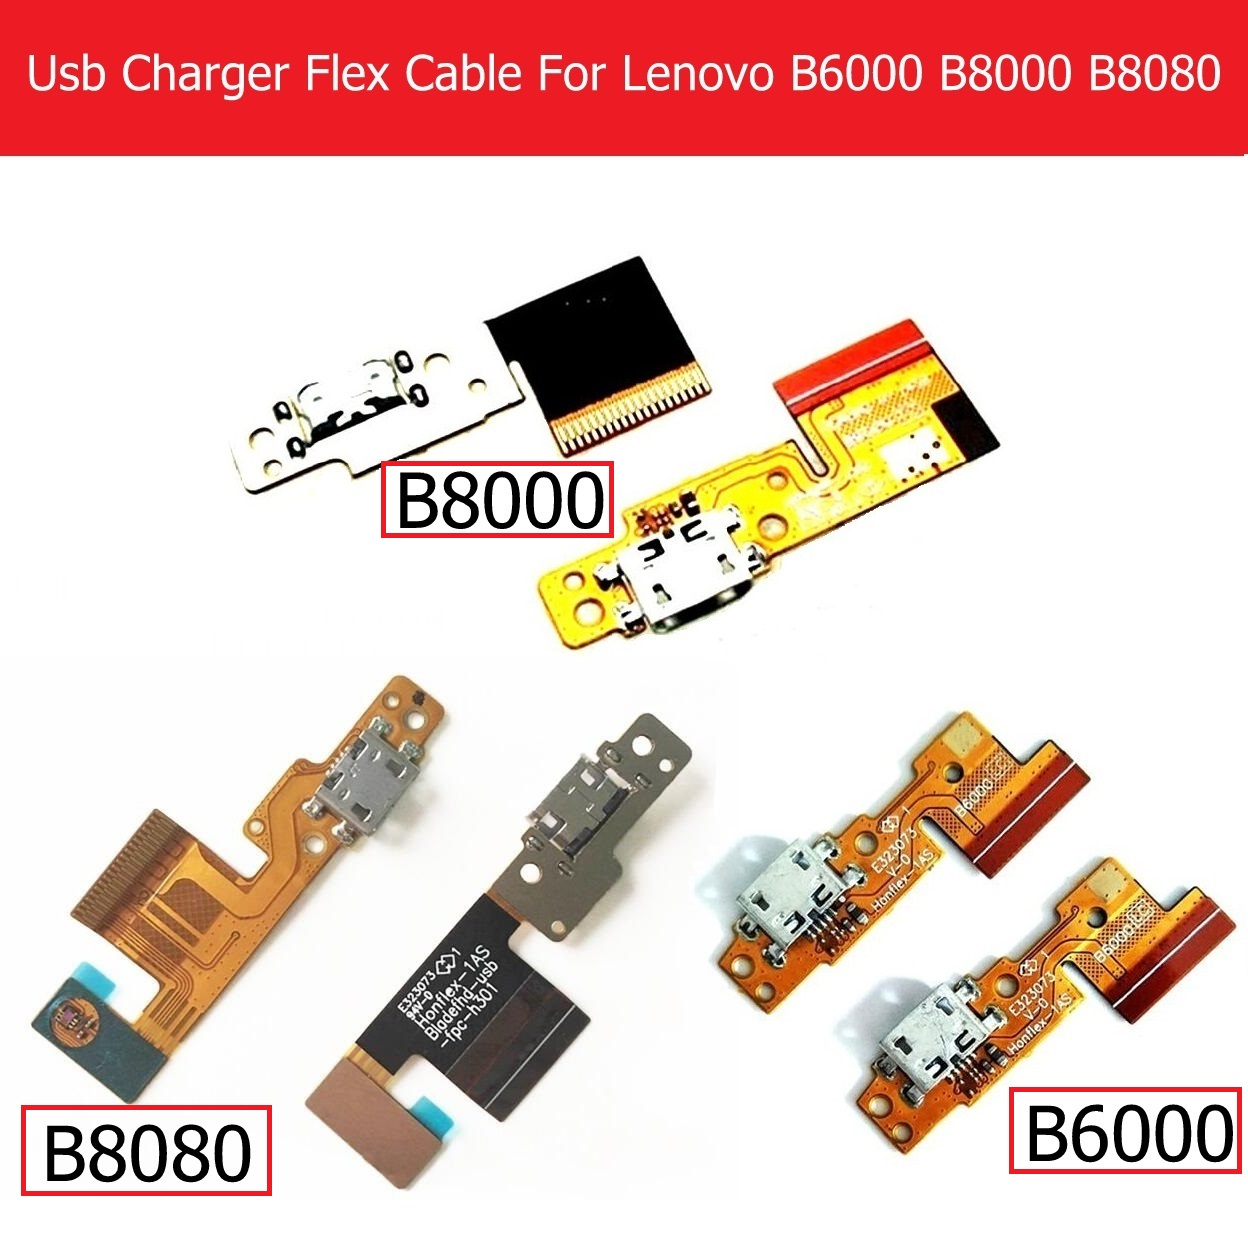 Genuine USB Charger Connector Flex Cable For Lenovo Pad B8000 B8080 10.1